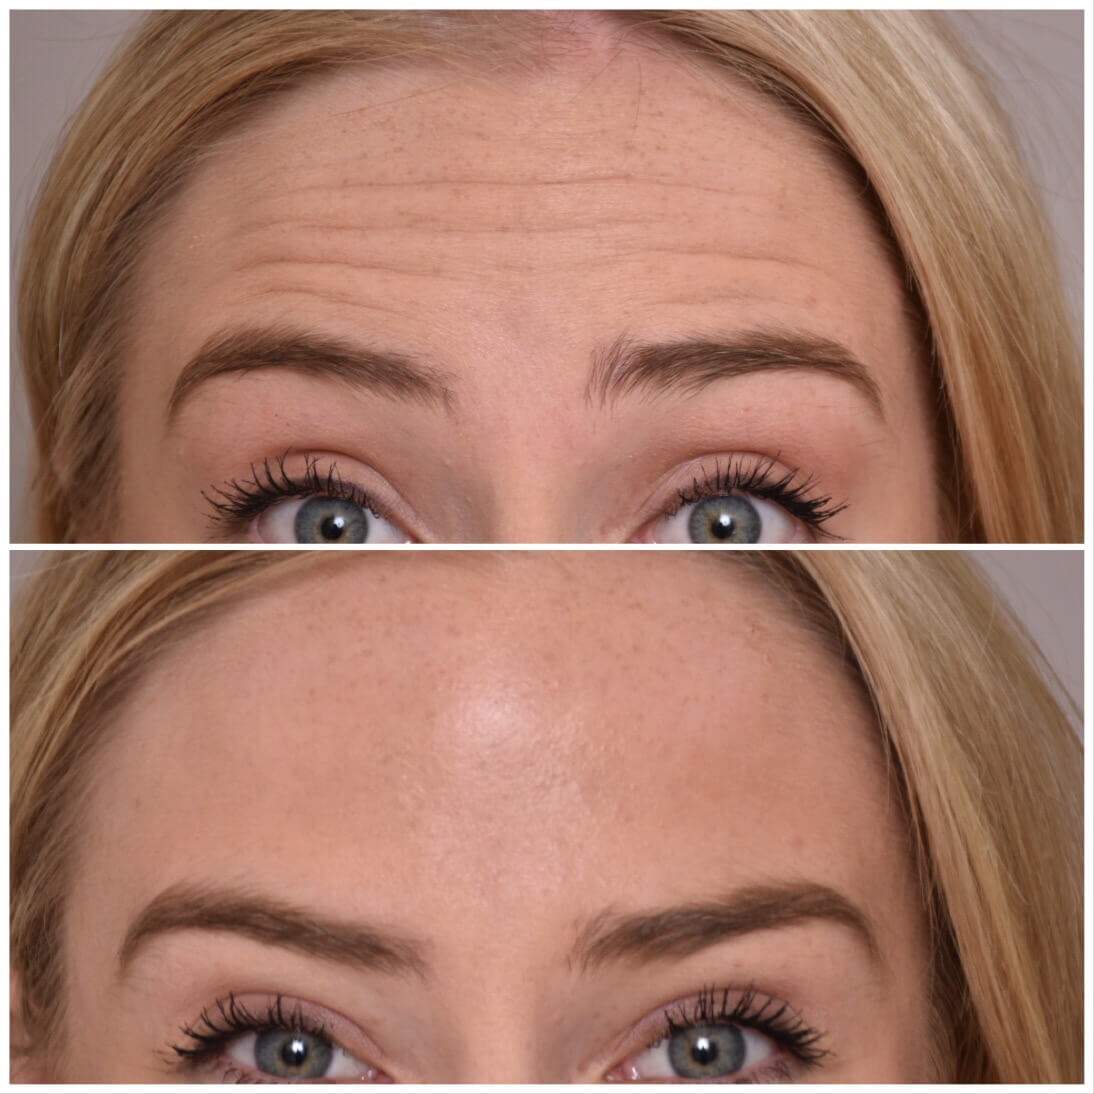 Anti Wrinkle treatment Before and after images